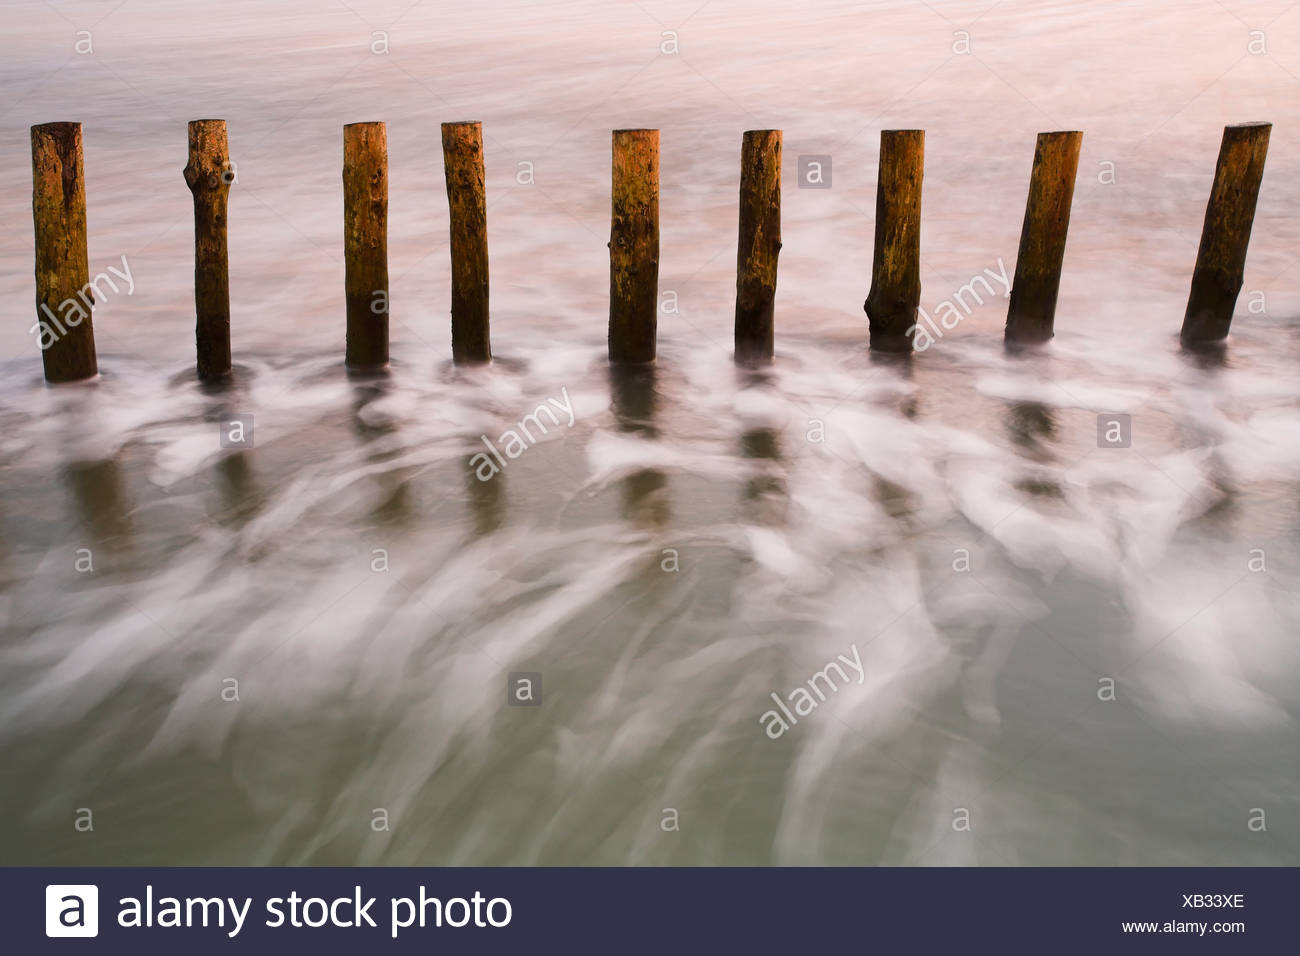 Wooden posts in the sea at West Wittering, Sussex, England. - Stock Image